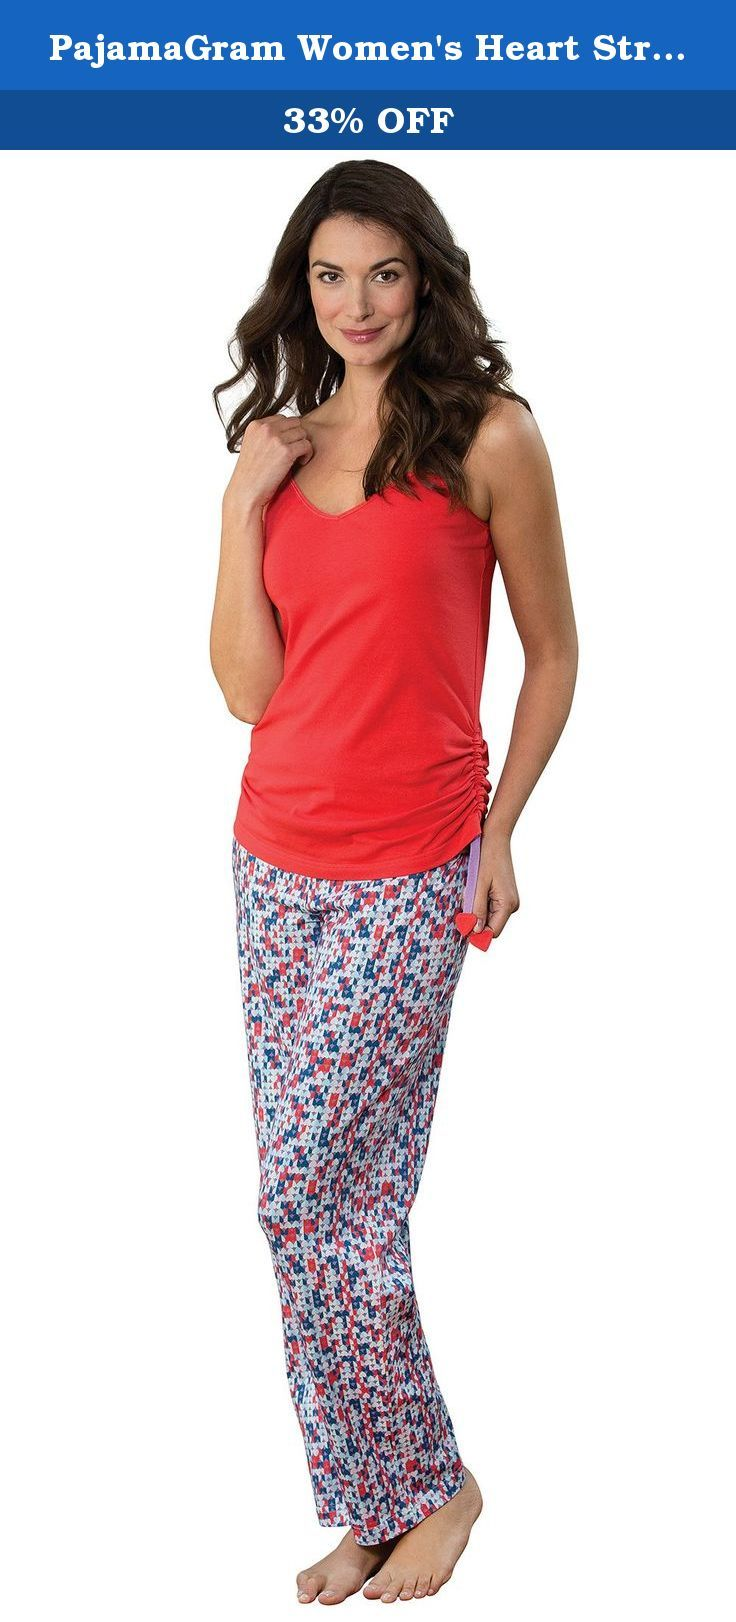 PajamaGram Women's Heart String Pajamas w/ Sleeveless Top and Pants. Tug at her heart strings in the super-sweet Heart Strings Pajamas from PajamaGram. These adorable jammies feature a red V-neck cami top with interlined fabric hearts and adjustable straps that allow you to wear it long or cinched at the sides. The coordinating full-length pants feature a modern geometric heart print in a kaleidoscope of colors. These premium women's PJs are designed for grade-A comfort with a flat-front...